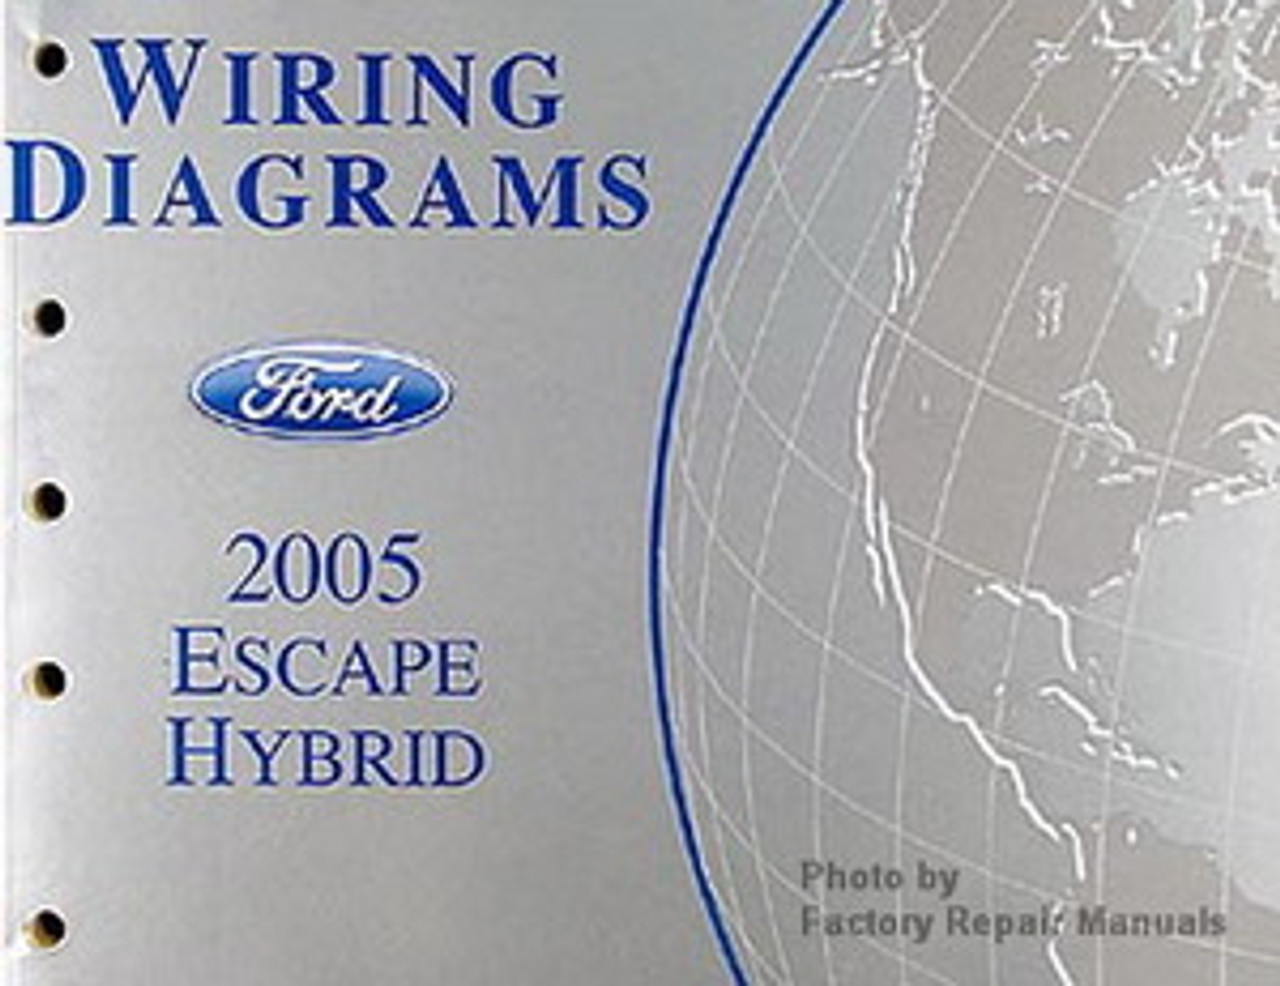 2005 Ford Escape Hybrid Electrical Wiring Diagrams